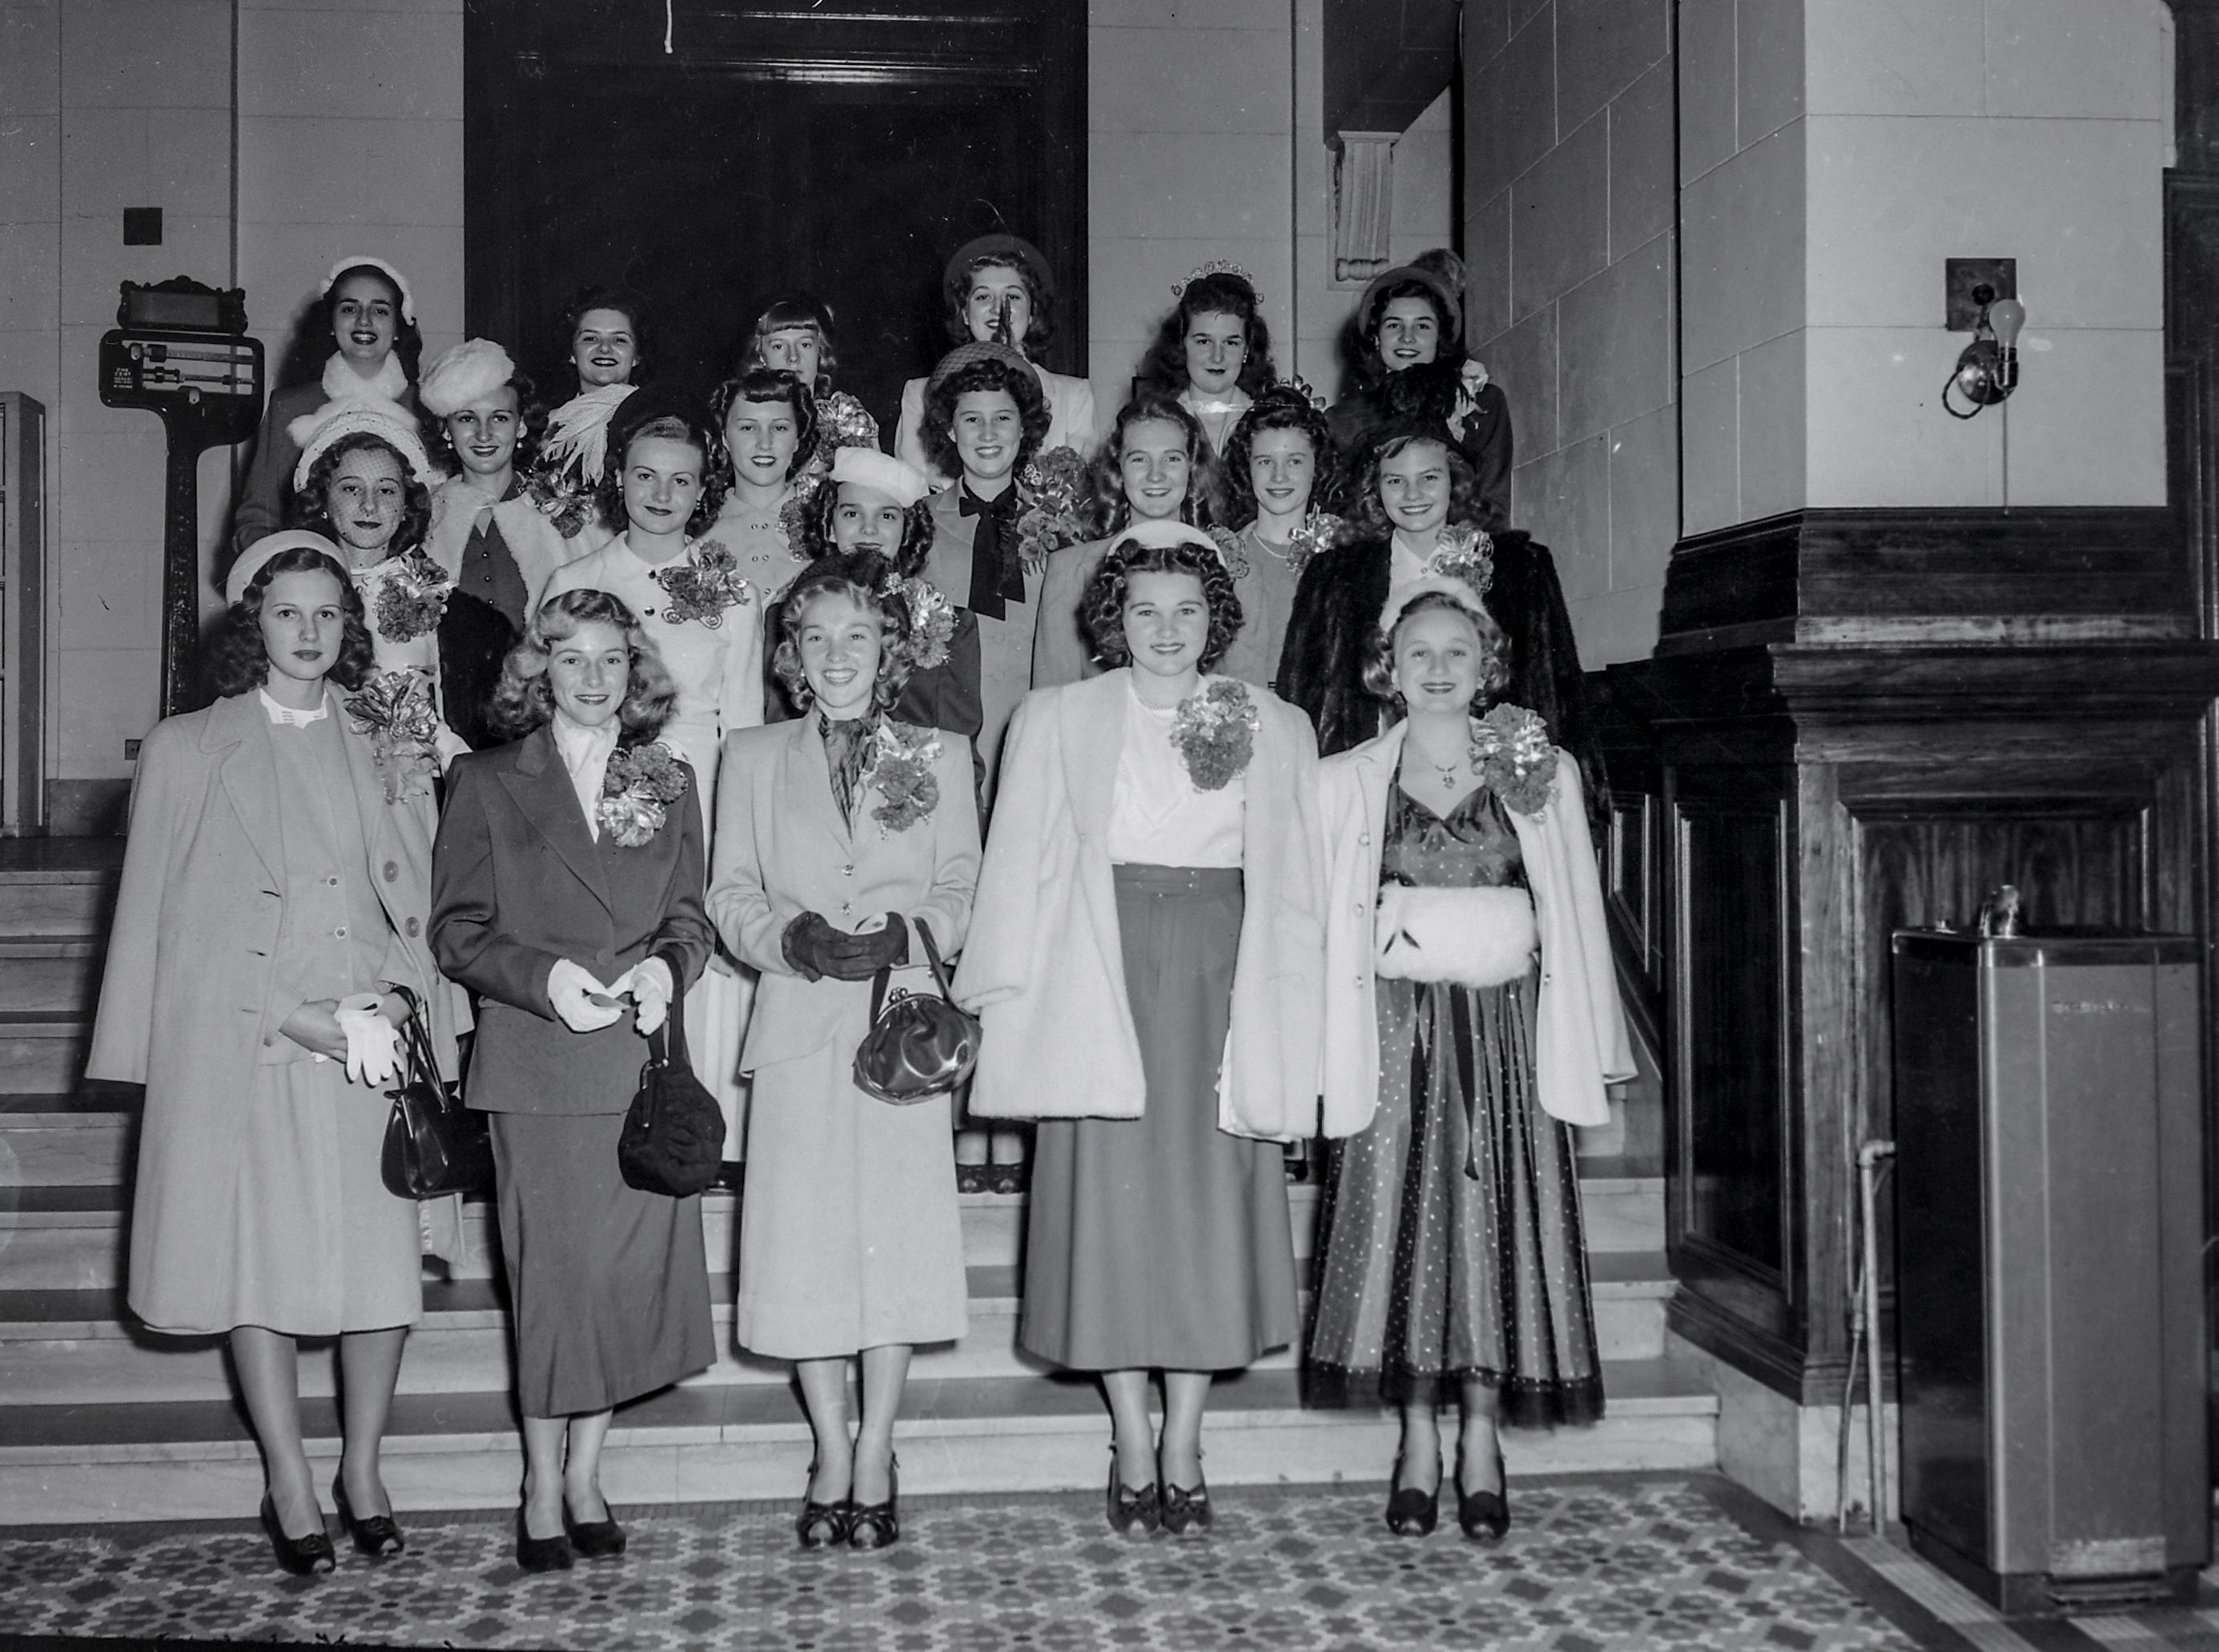 A group photograph of the beauty queens from various high schools in the area, taken at the Calhoun Hotel before the Anderson Christmas Parade on December 1949 in downtown Anderson.